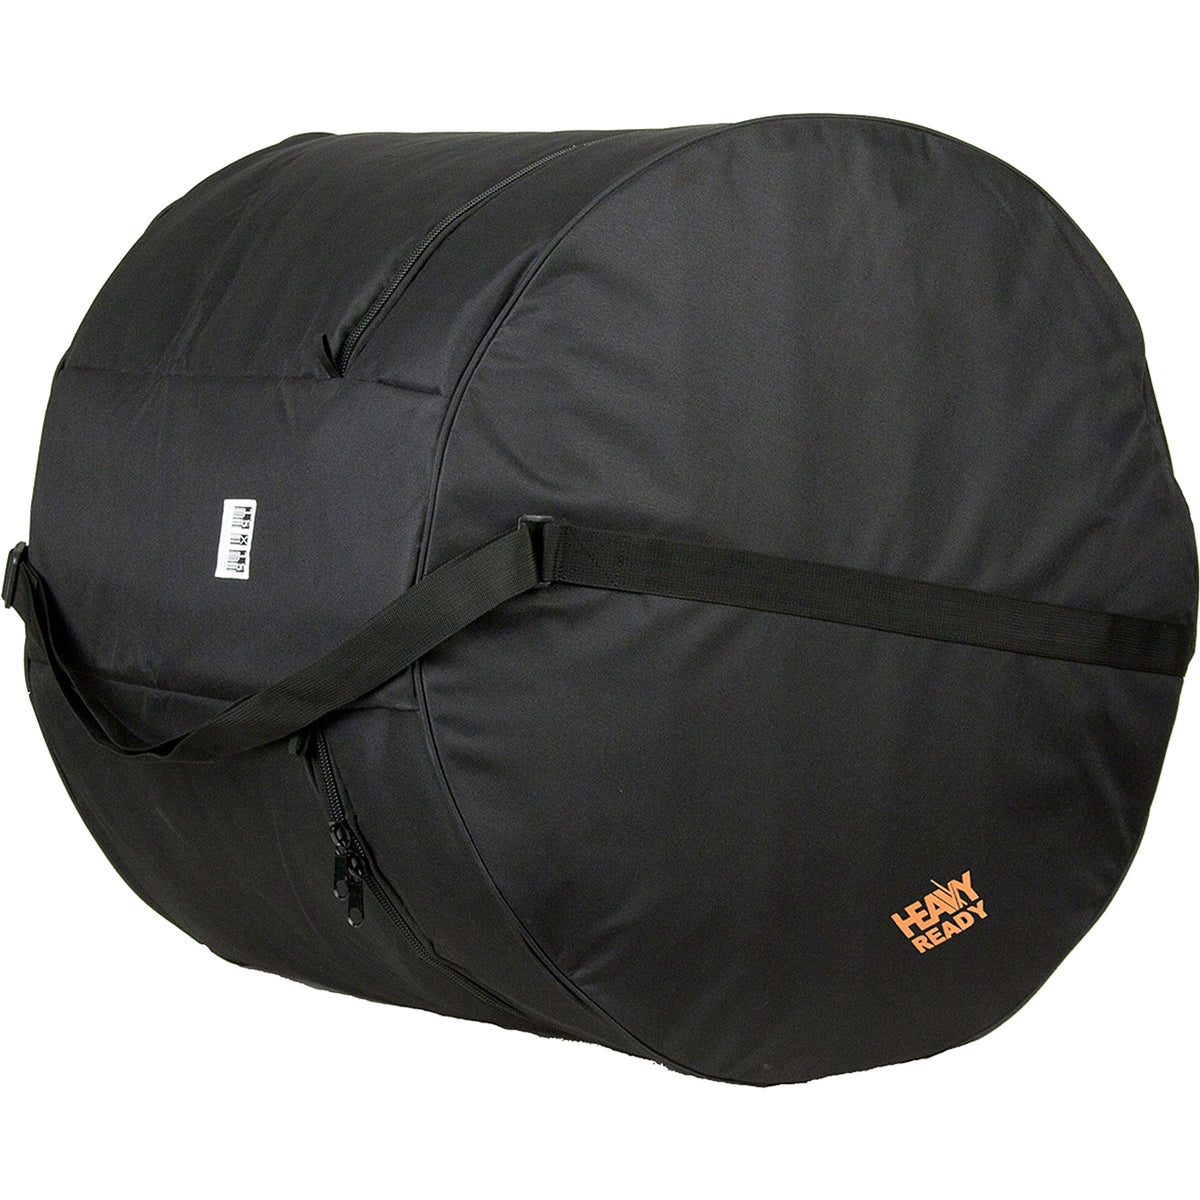 PROTEC Heavy Ready Padded  Tom Bag 16x16